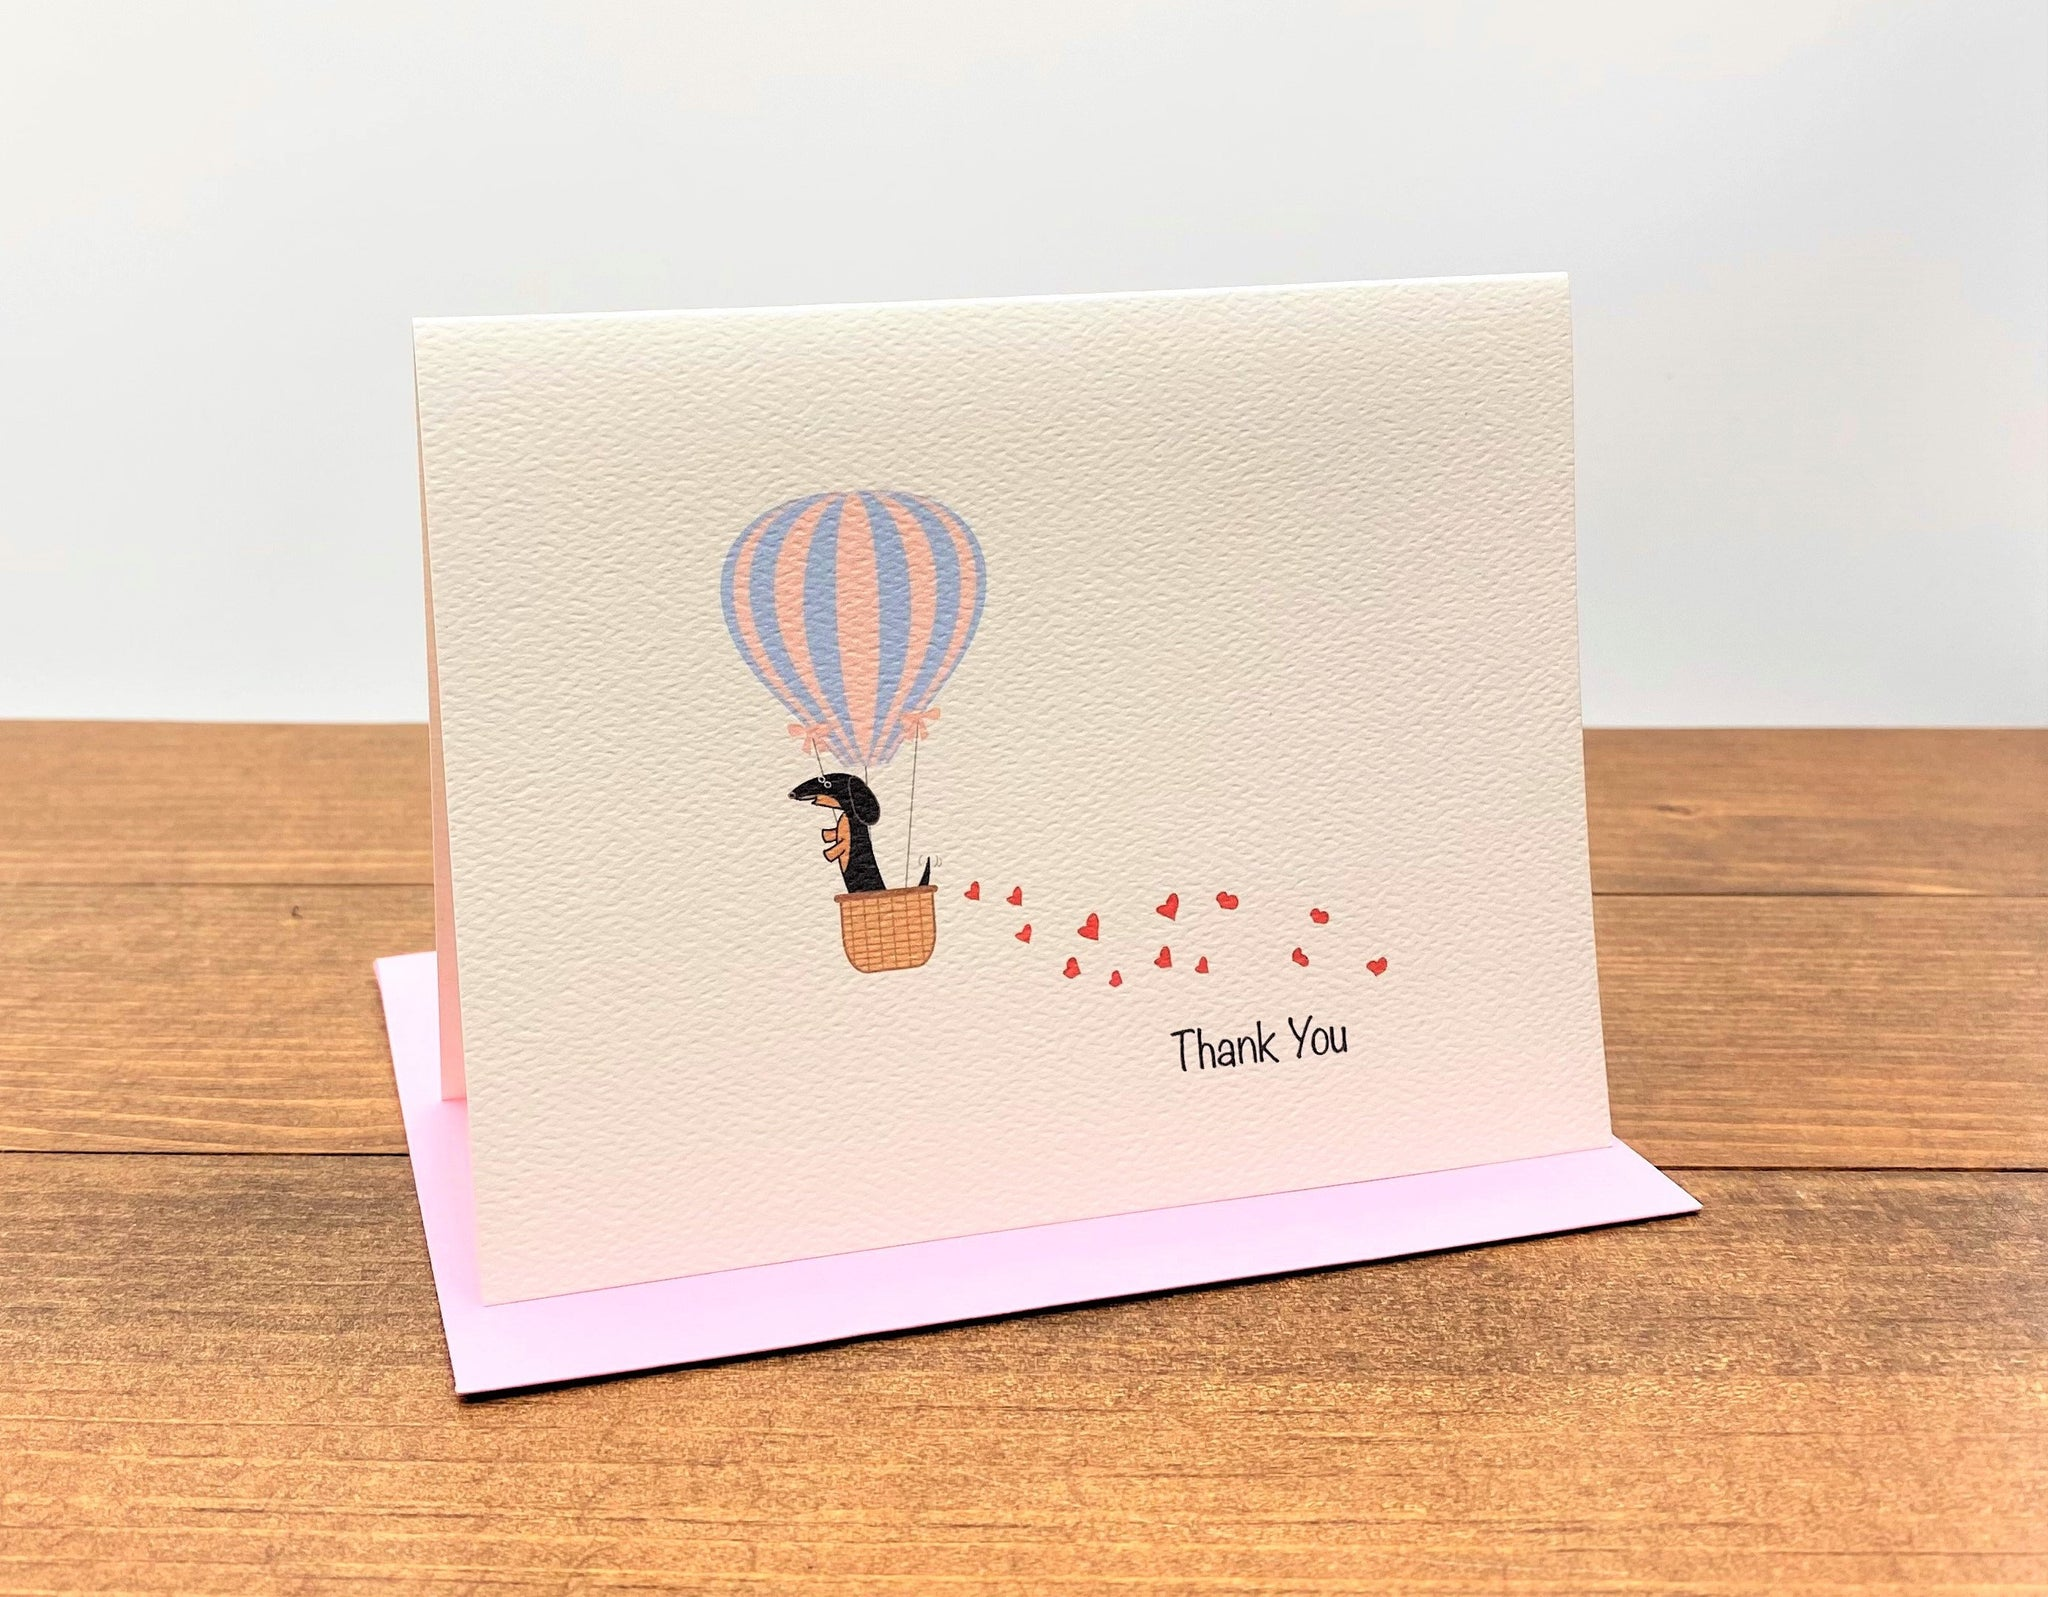 Thank you note card with black and tan dachshund in hot air balloon with trail of hearts behind it.